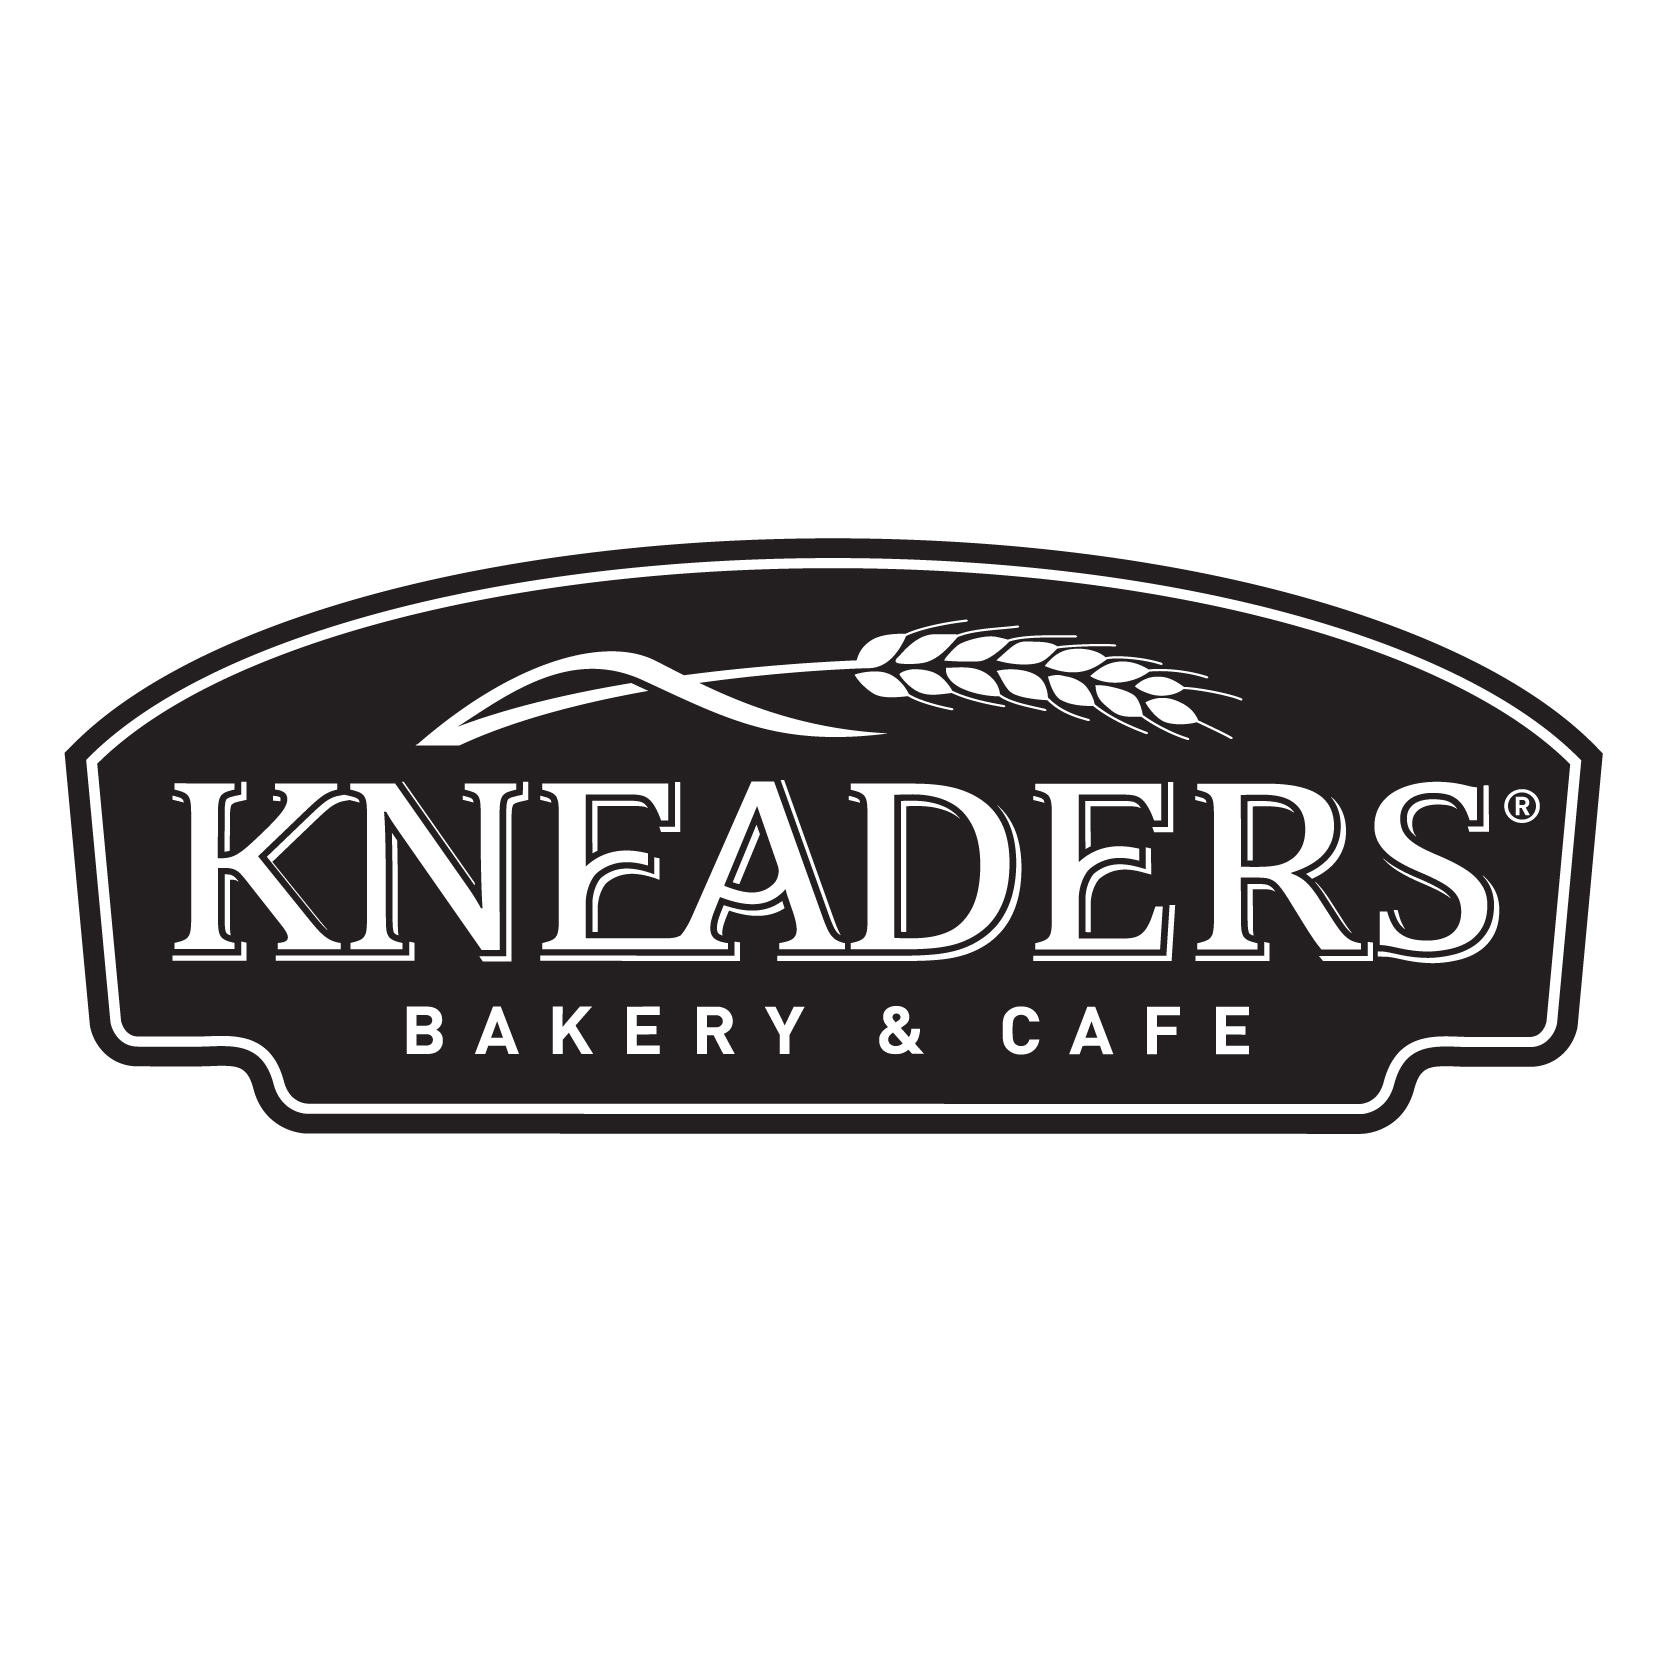 Kneader's Bakery & Cafe